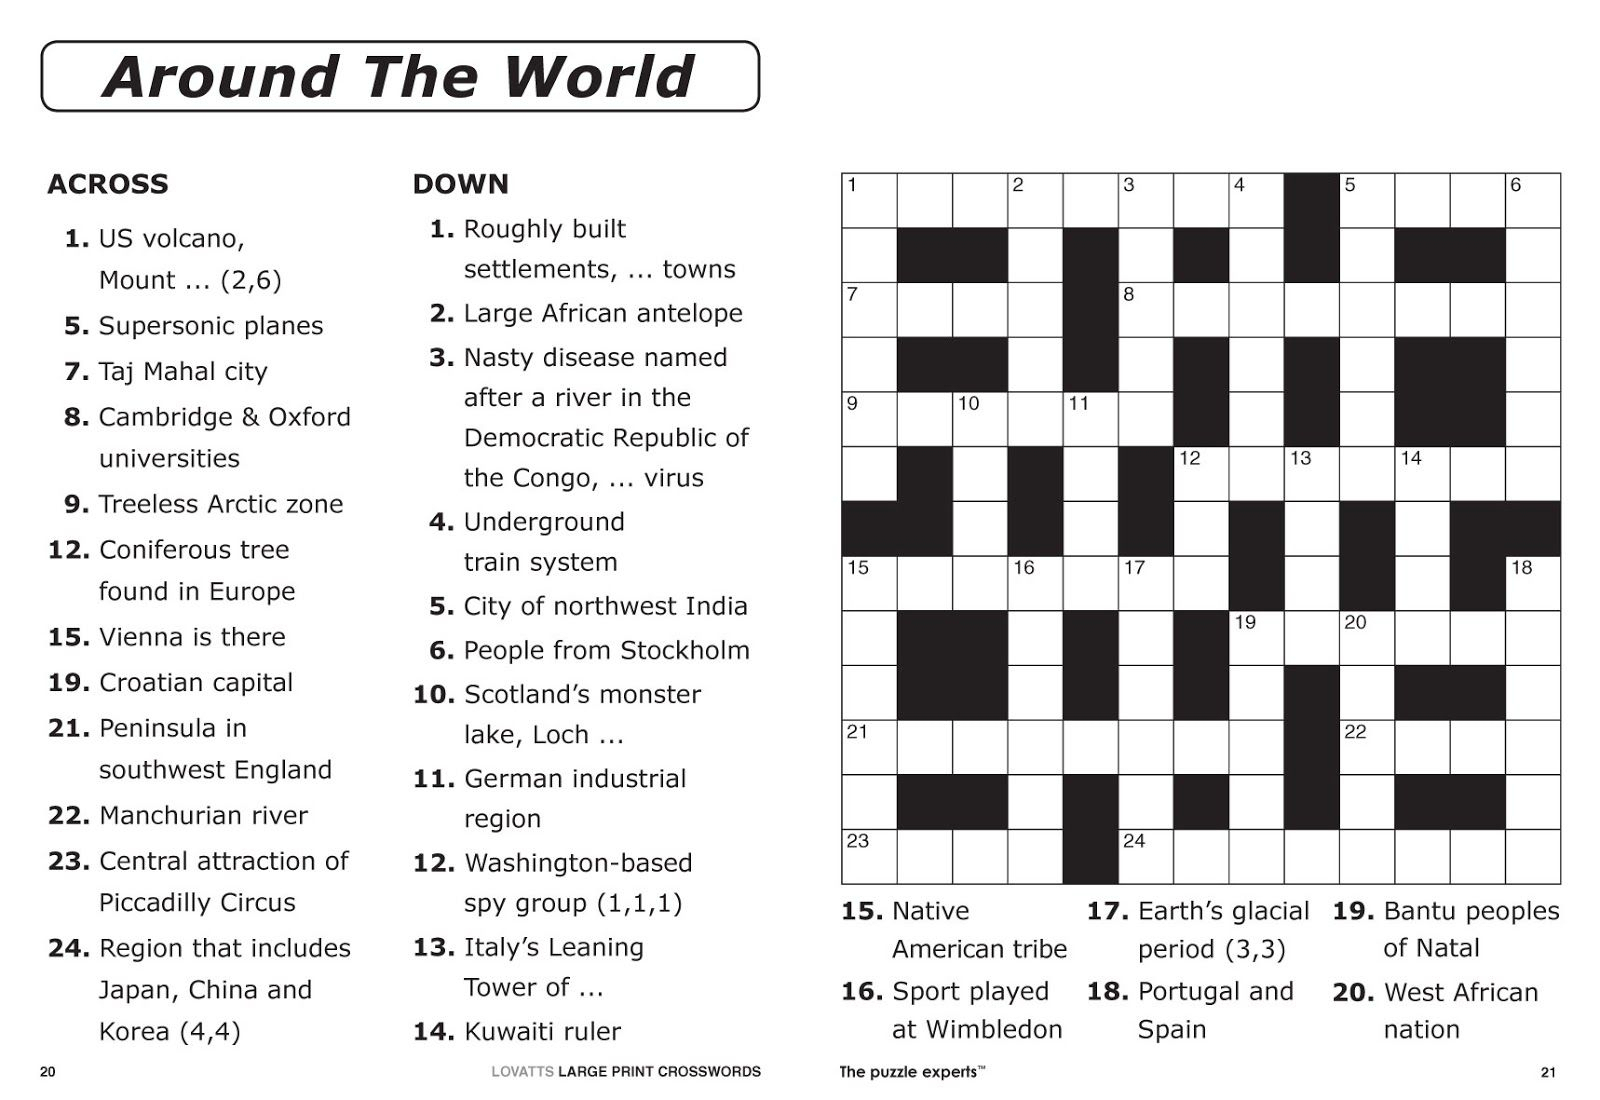 Free Printable Large Print Crossword Puzzles | M3U8 - Large Print Crossword Puzzle Dictionary